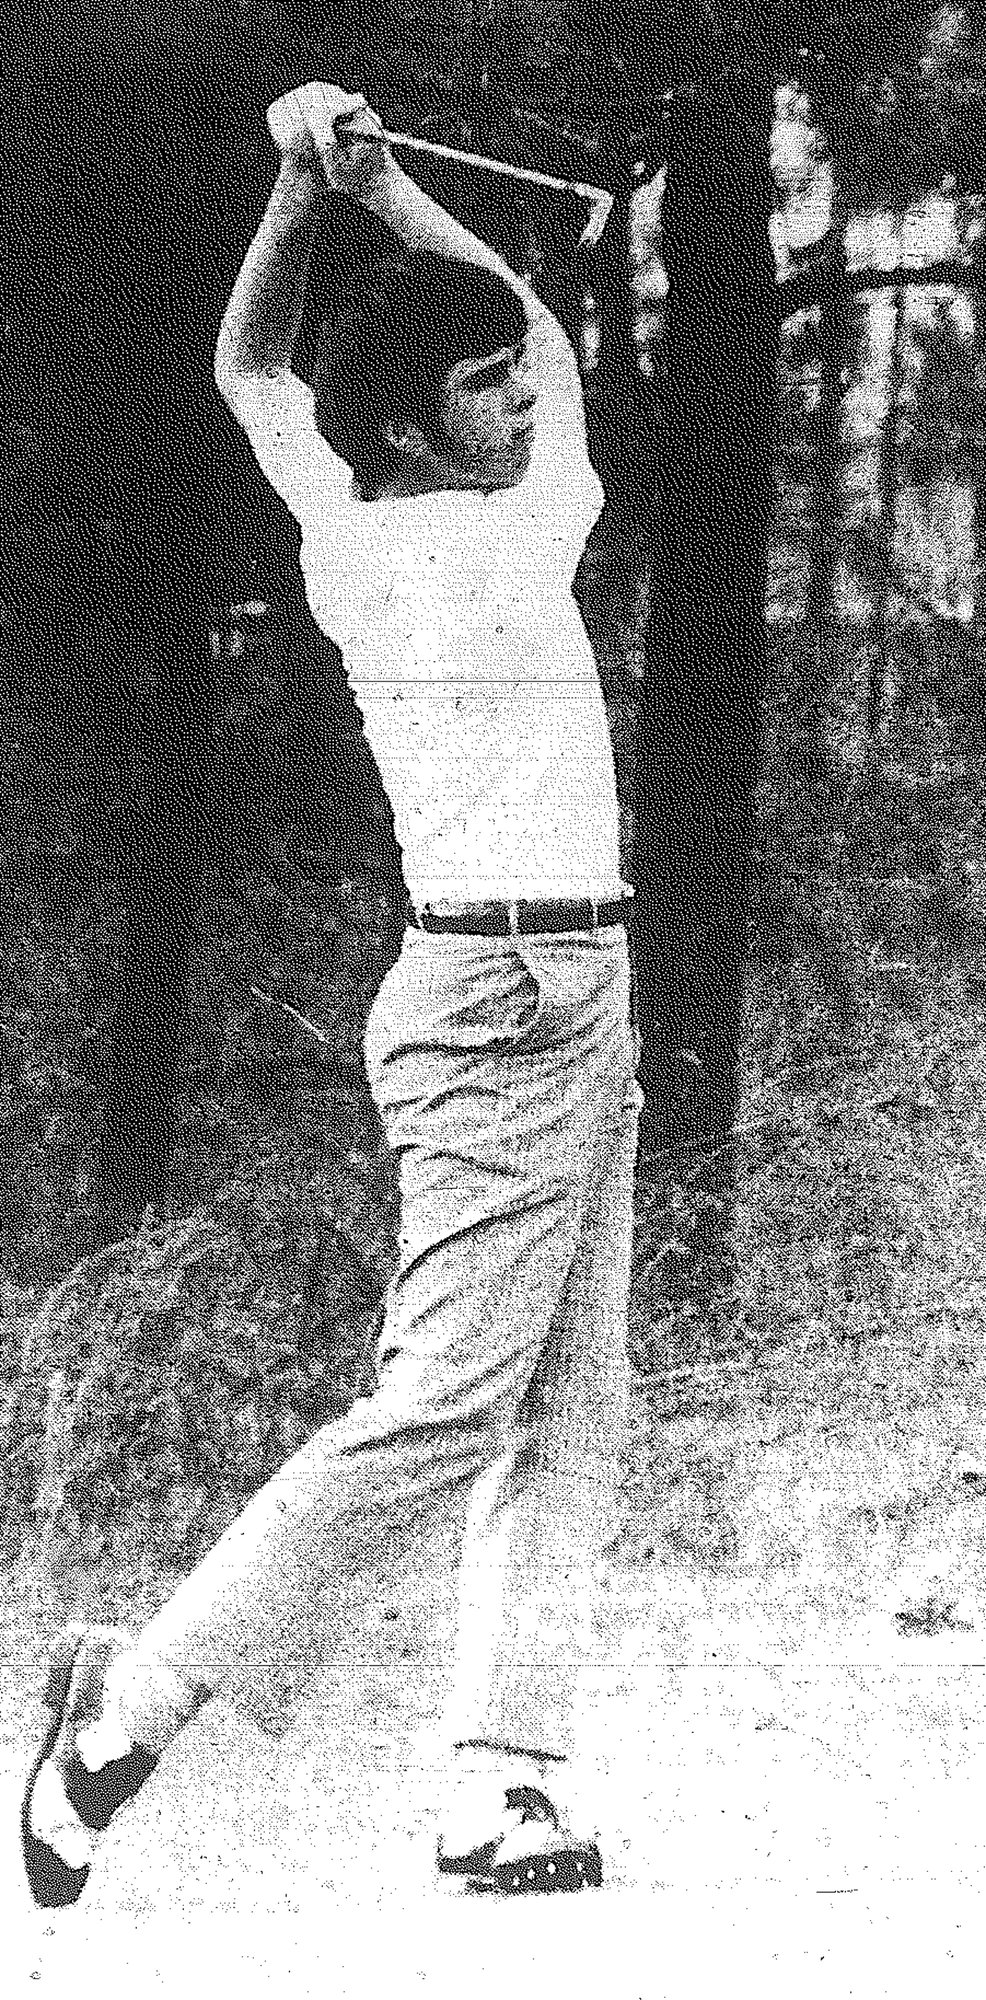 1970 - Bob Reardon of Edmunds High School gets off a drive in a match against Eau Claire at Sunset Country Club on March 23. Reardon shot a 77 while Steve Broome and Cary Stoffel took medalist honors with 73s. Edmunds won, 307-342.